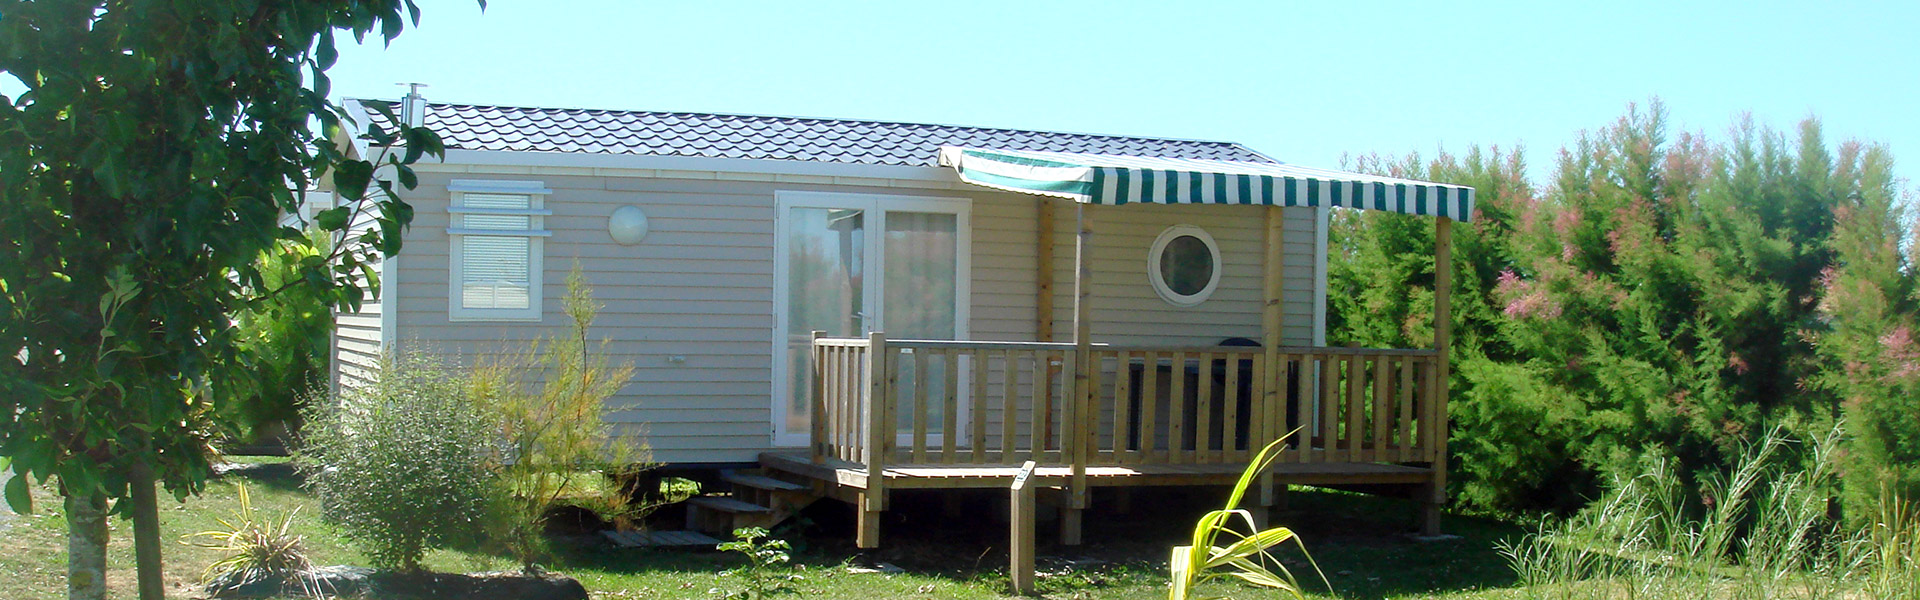 location mobil-home Vendée